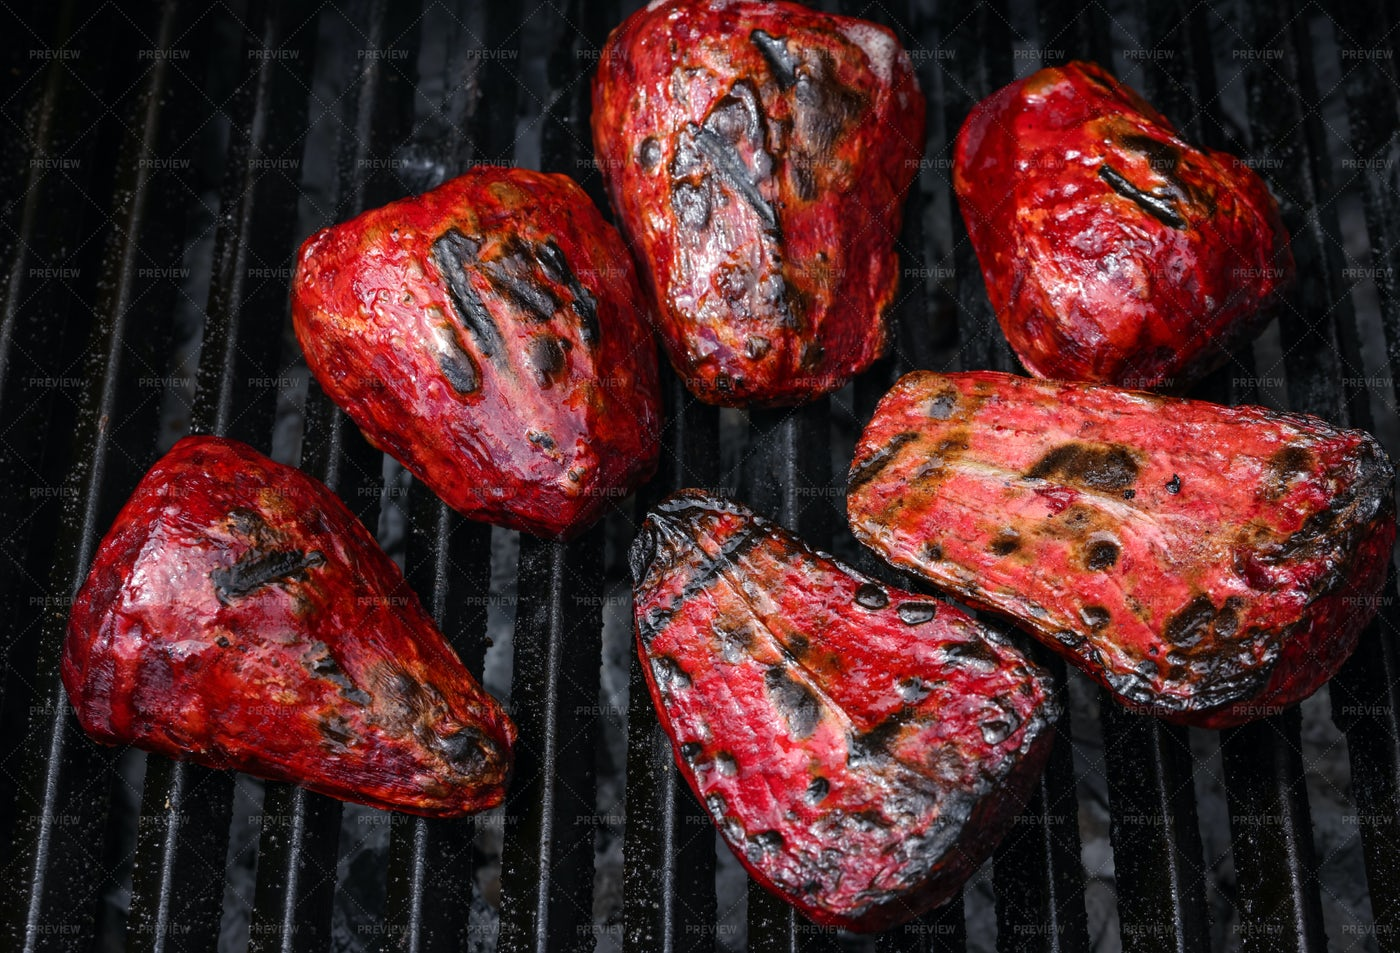 Red Beetroot In Charcoal Grill: Stock Photos